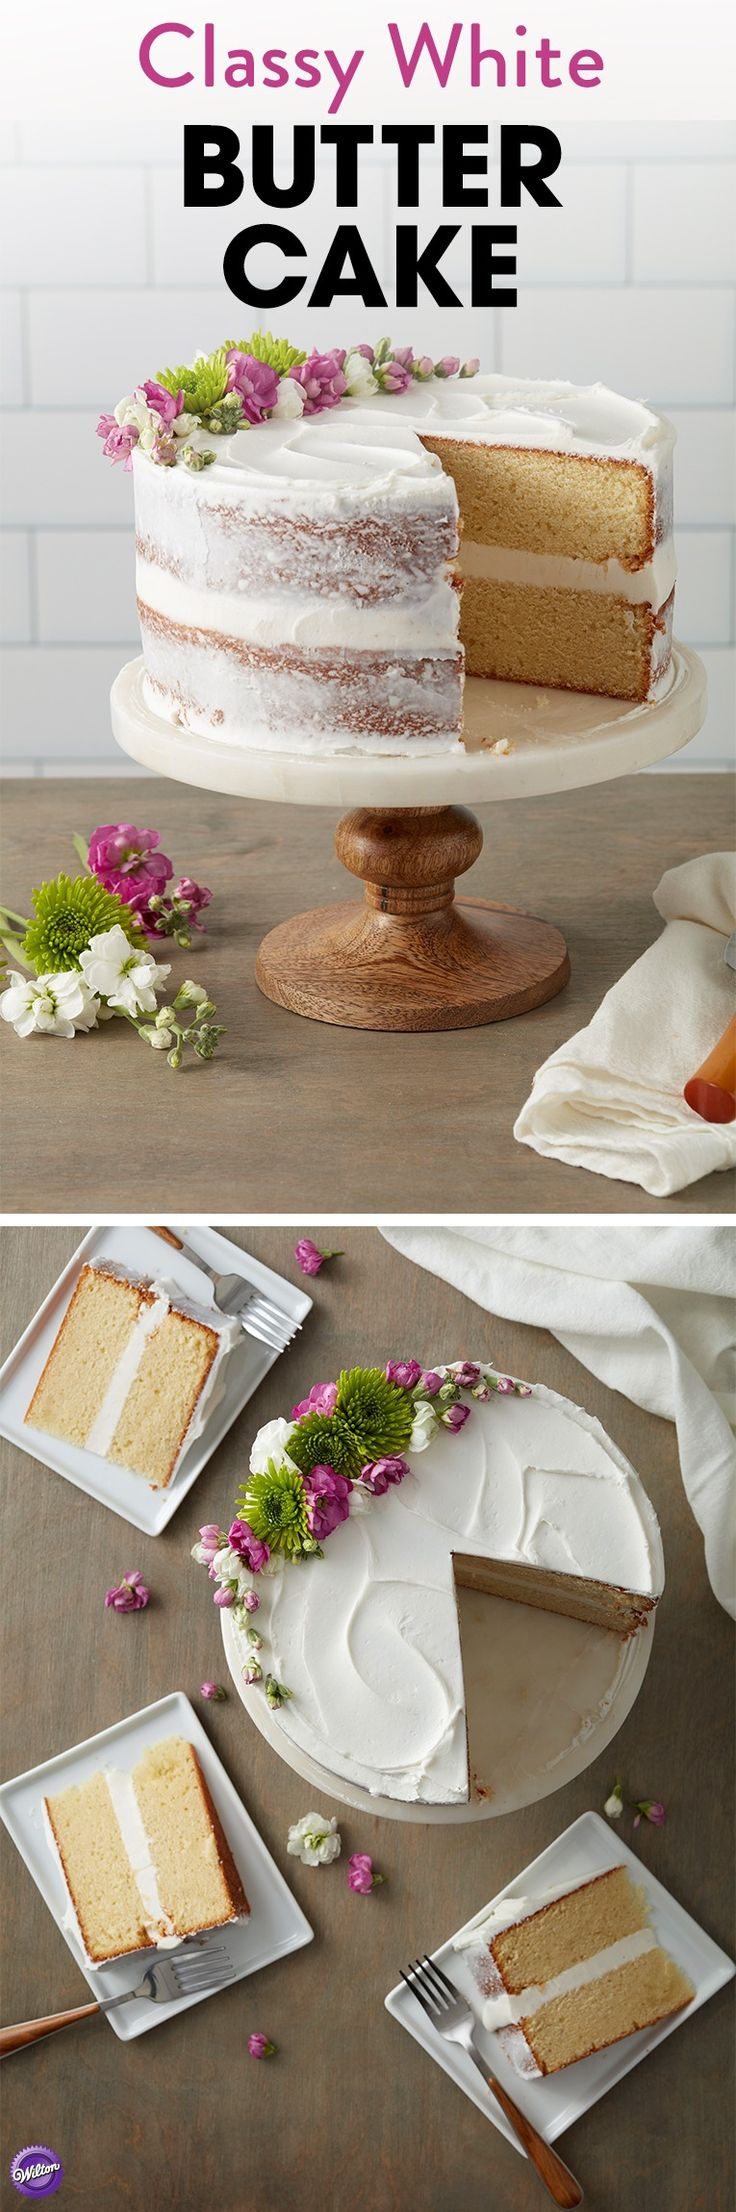 Hosting a wedding shower or birthday celebration? This Classy White Butter Cake is an easy and stress-free dessert that is the perfect ending to any party. Topped with beautiful edible flowers, this simple cake features an elegant rustic design and is a simple project for beginning decorators. The tasty Butter Cake recipe also holds up well to icing and decorating.